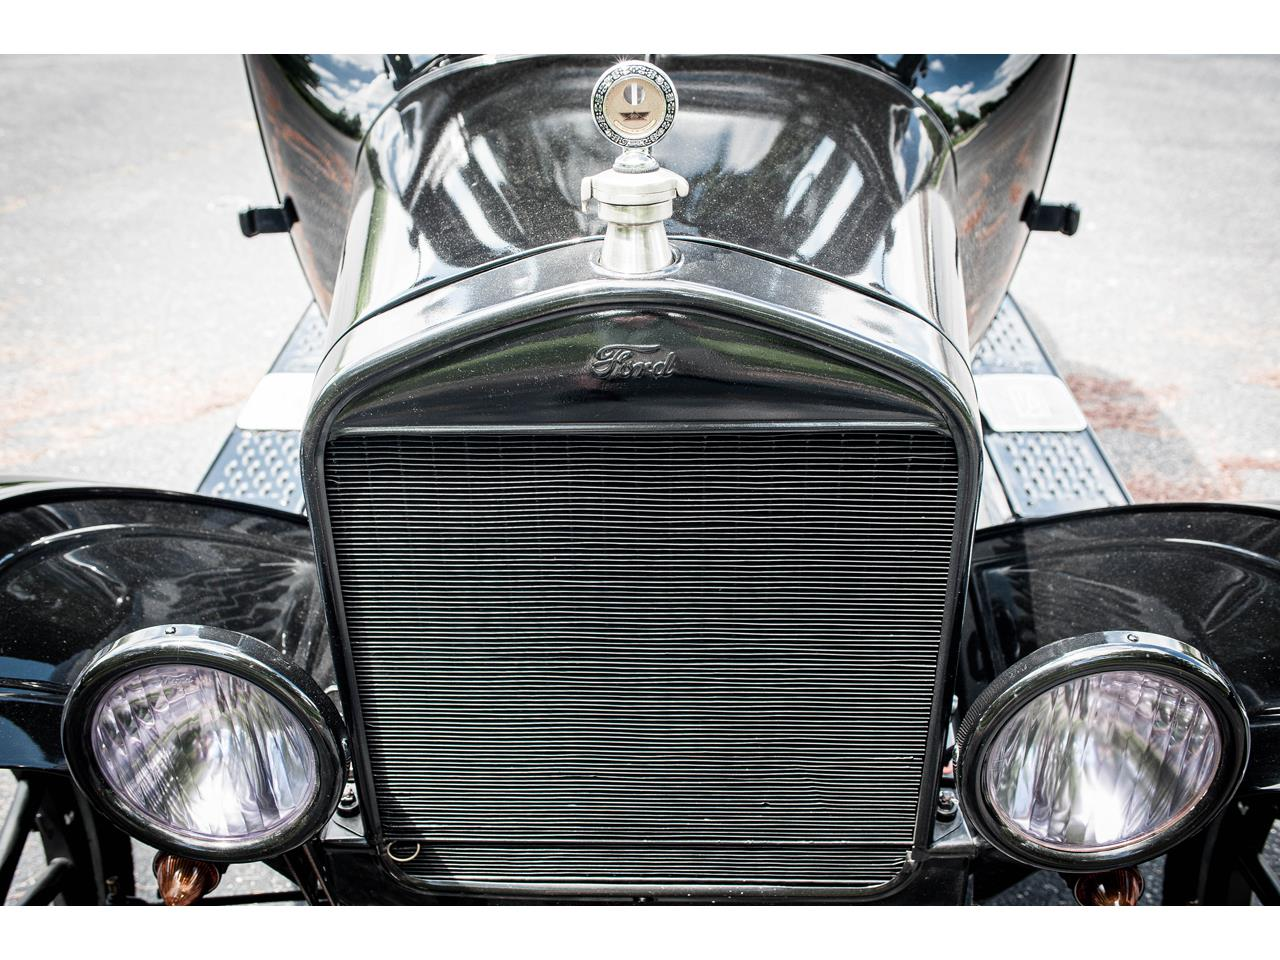 Large Picture of '25 Ford Model T located in O'Fallon Illinois Offered by Gateway Classic Cars - St. Louis - QB96